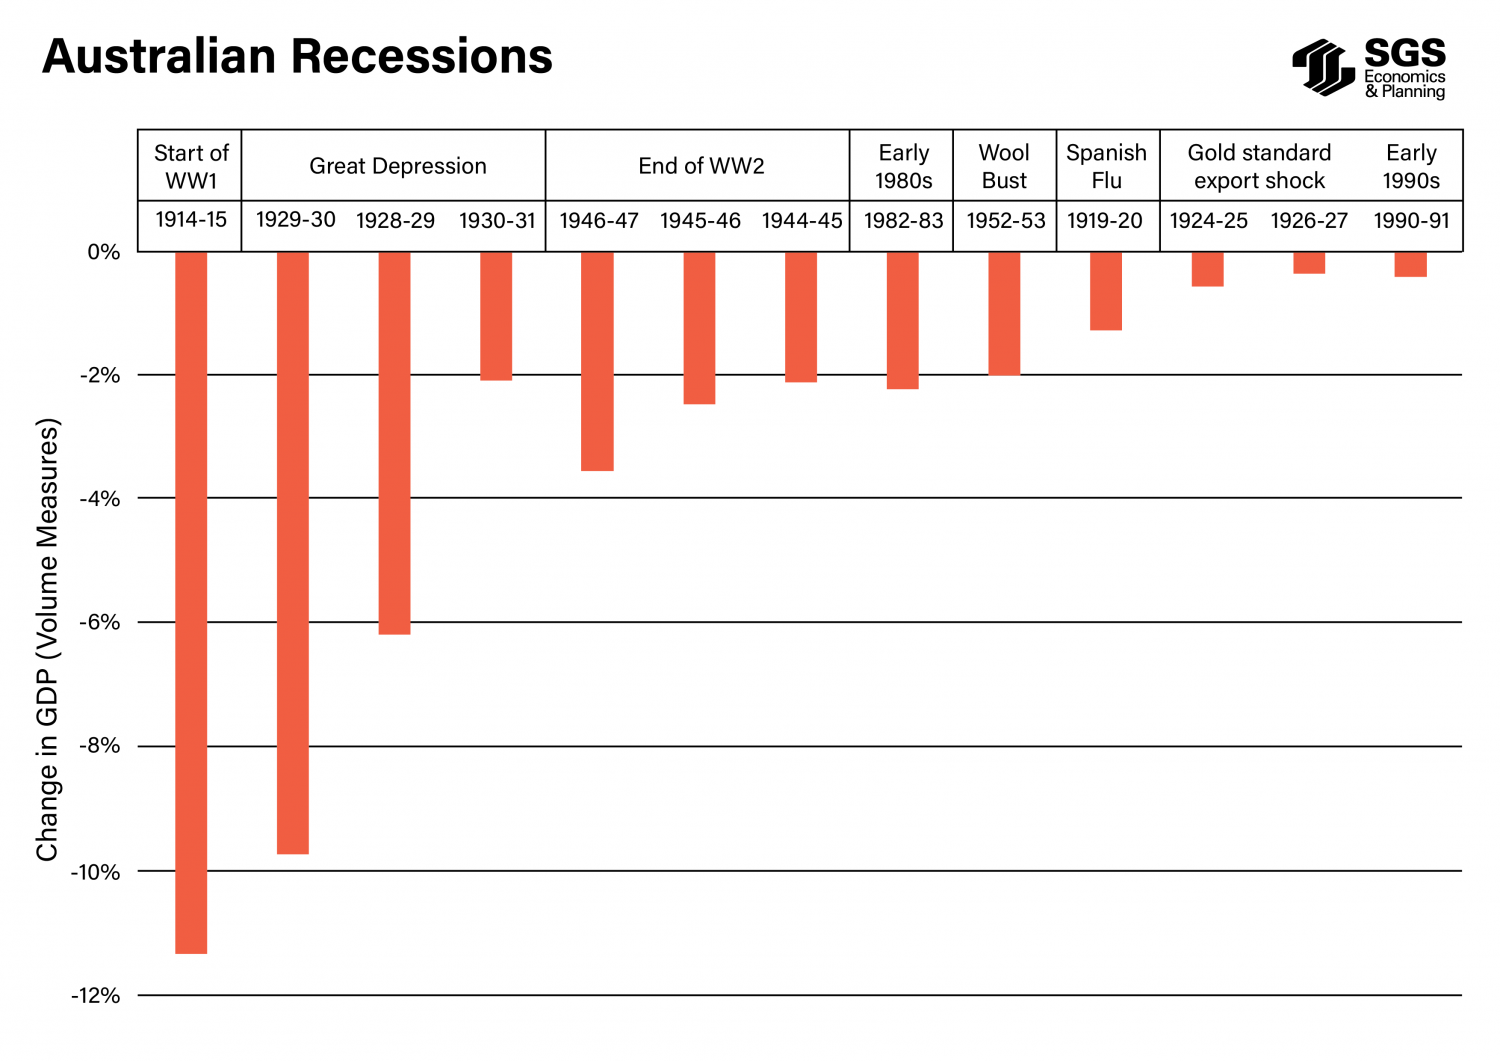 SGS Economics and Planning Australian Recessions